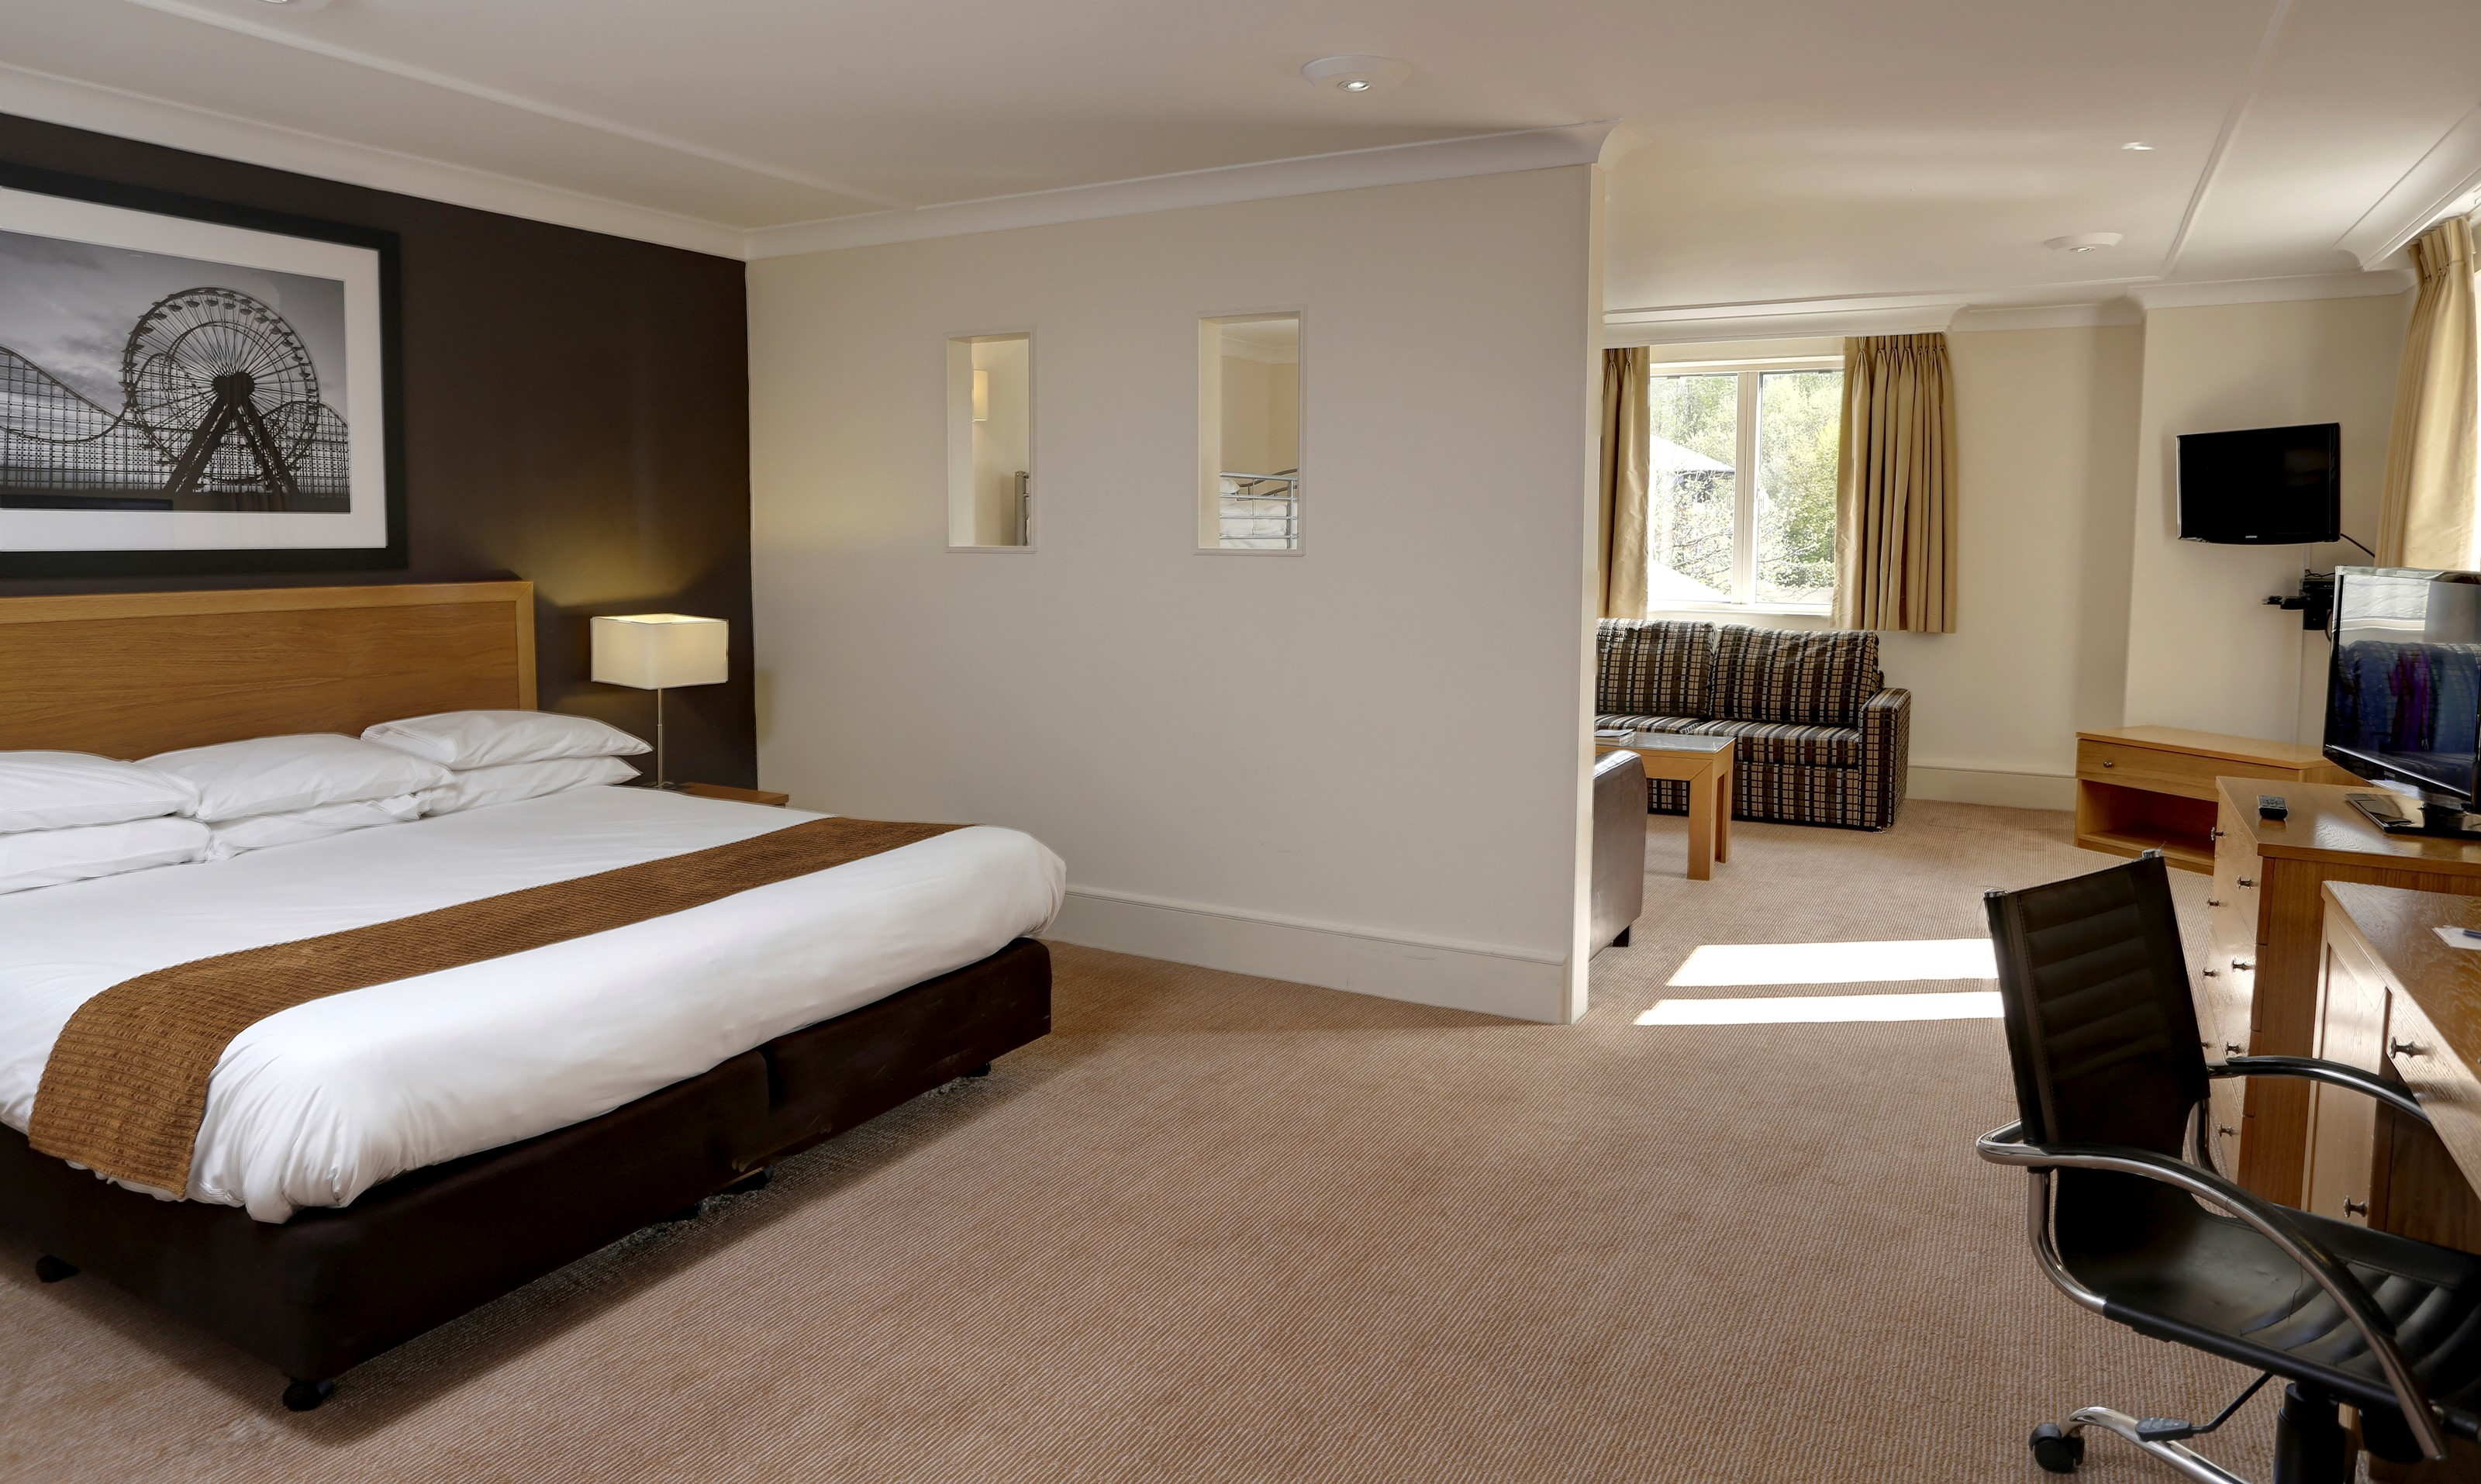 Tv And Internet Service >> Best Western Plus Stoke On Trent Moat House - Stoke on Trent